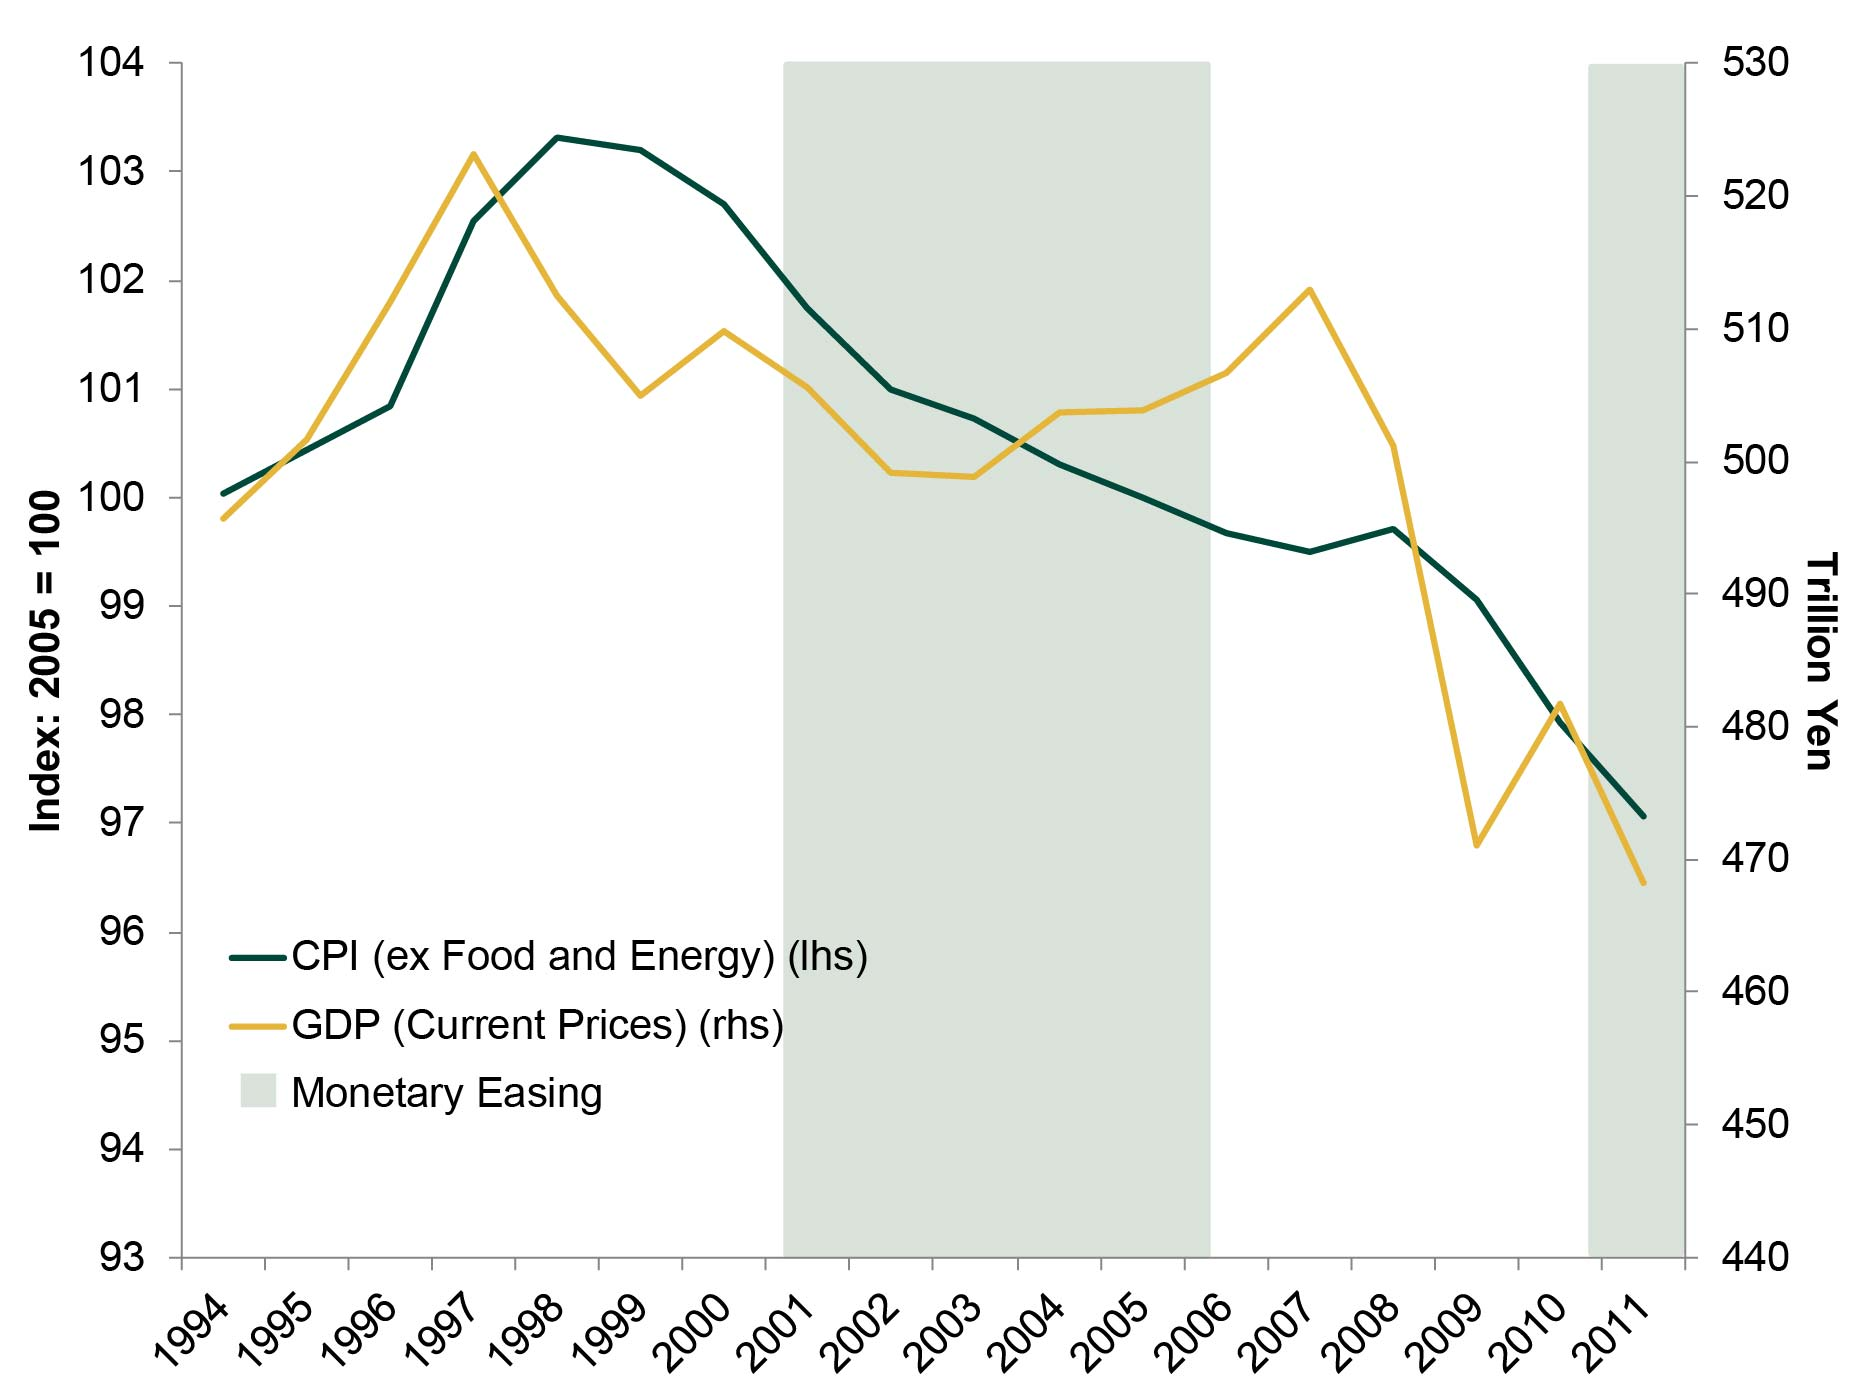 Exhibit 2: Inflation, Nominal GDP and Monetary Easing